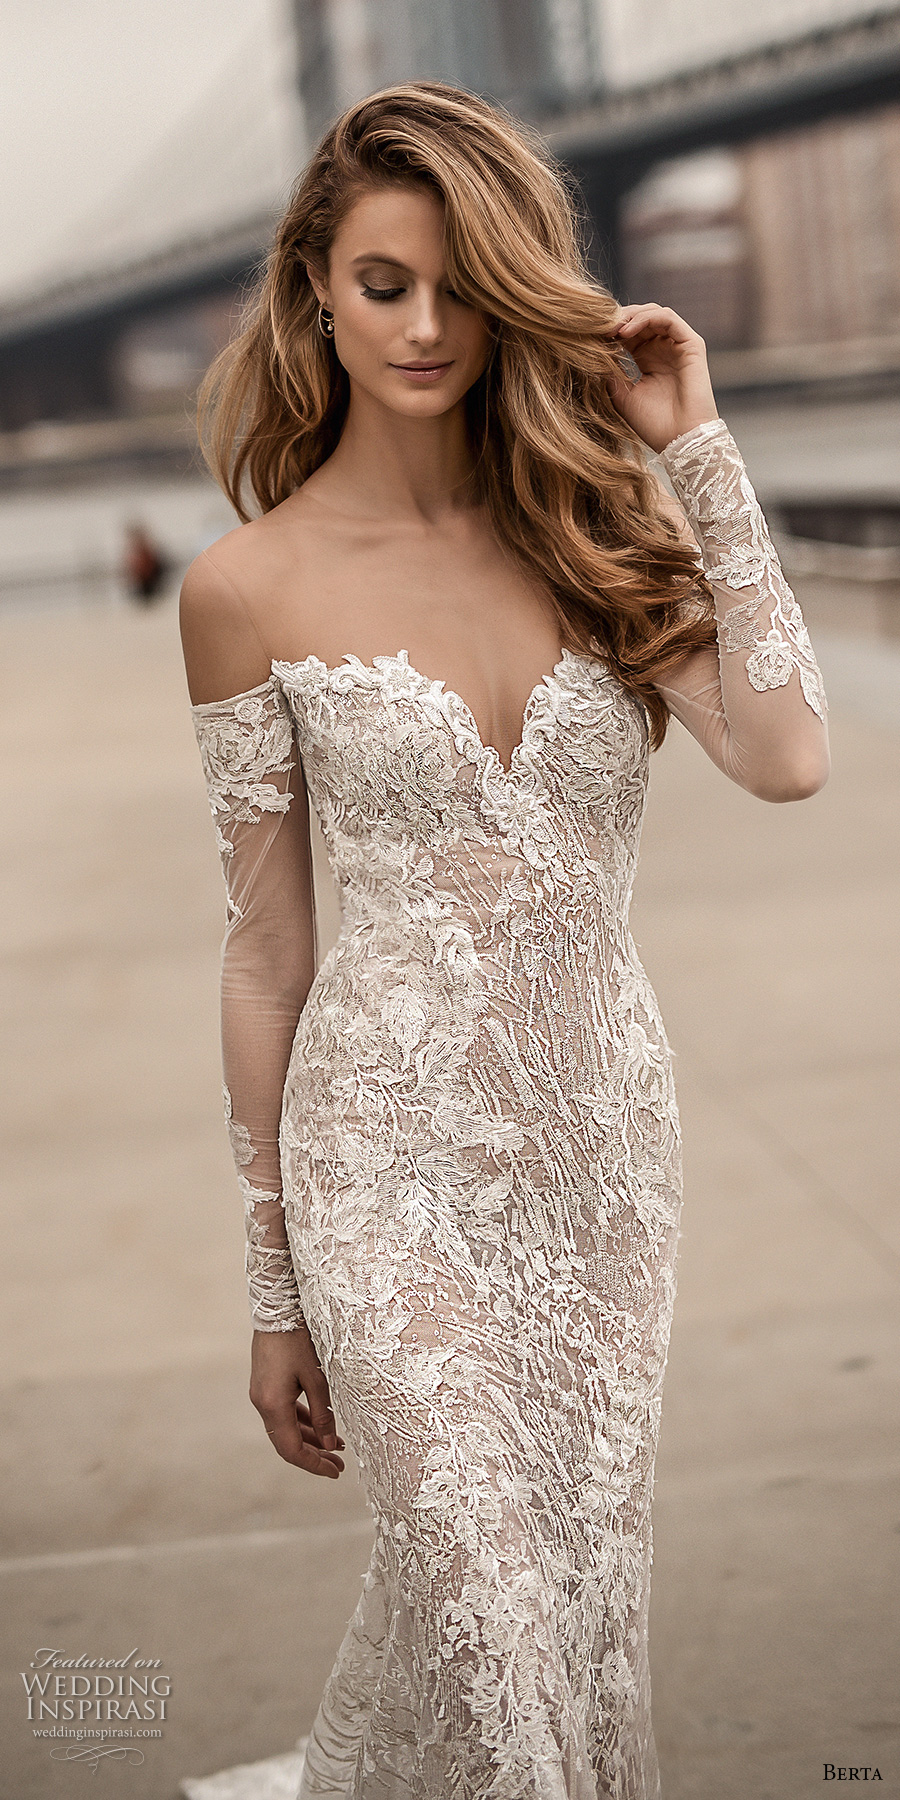 berta bridal 2018 wedding dresses part 1 crazyforus